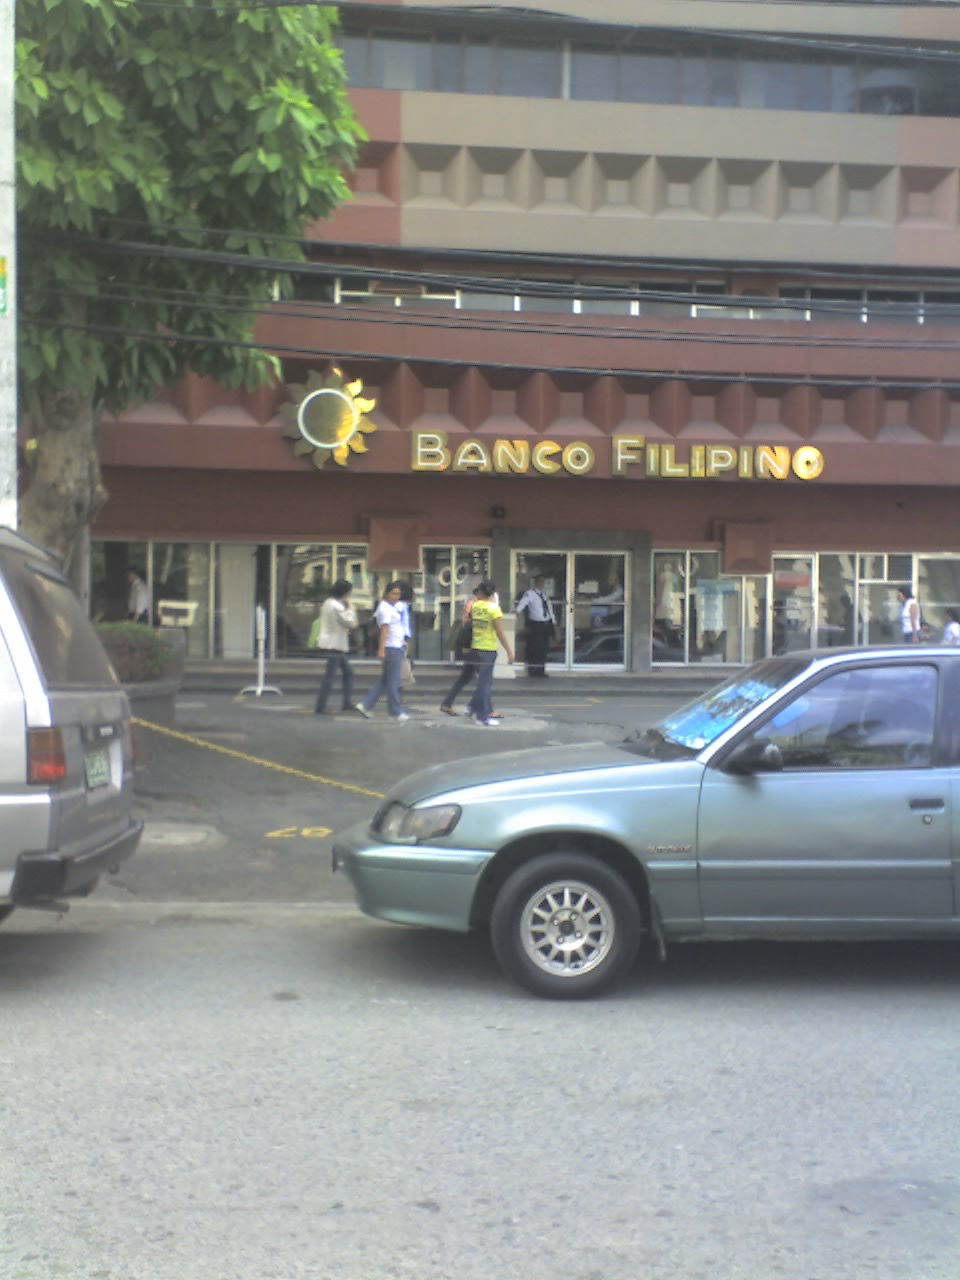 BANCO FILIPINO